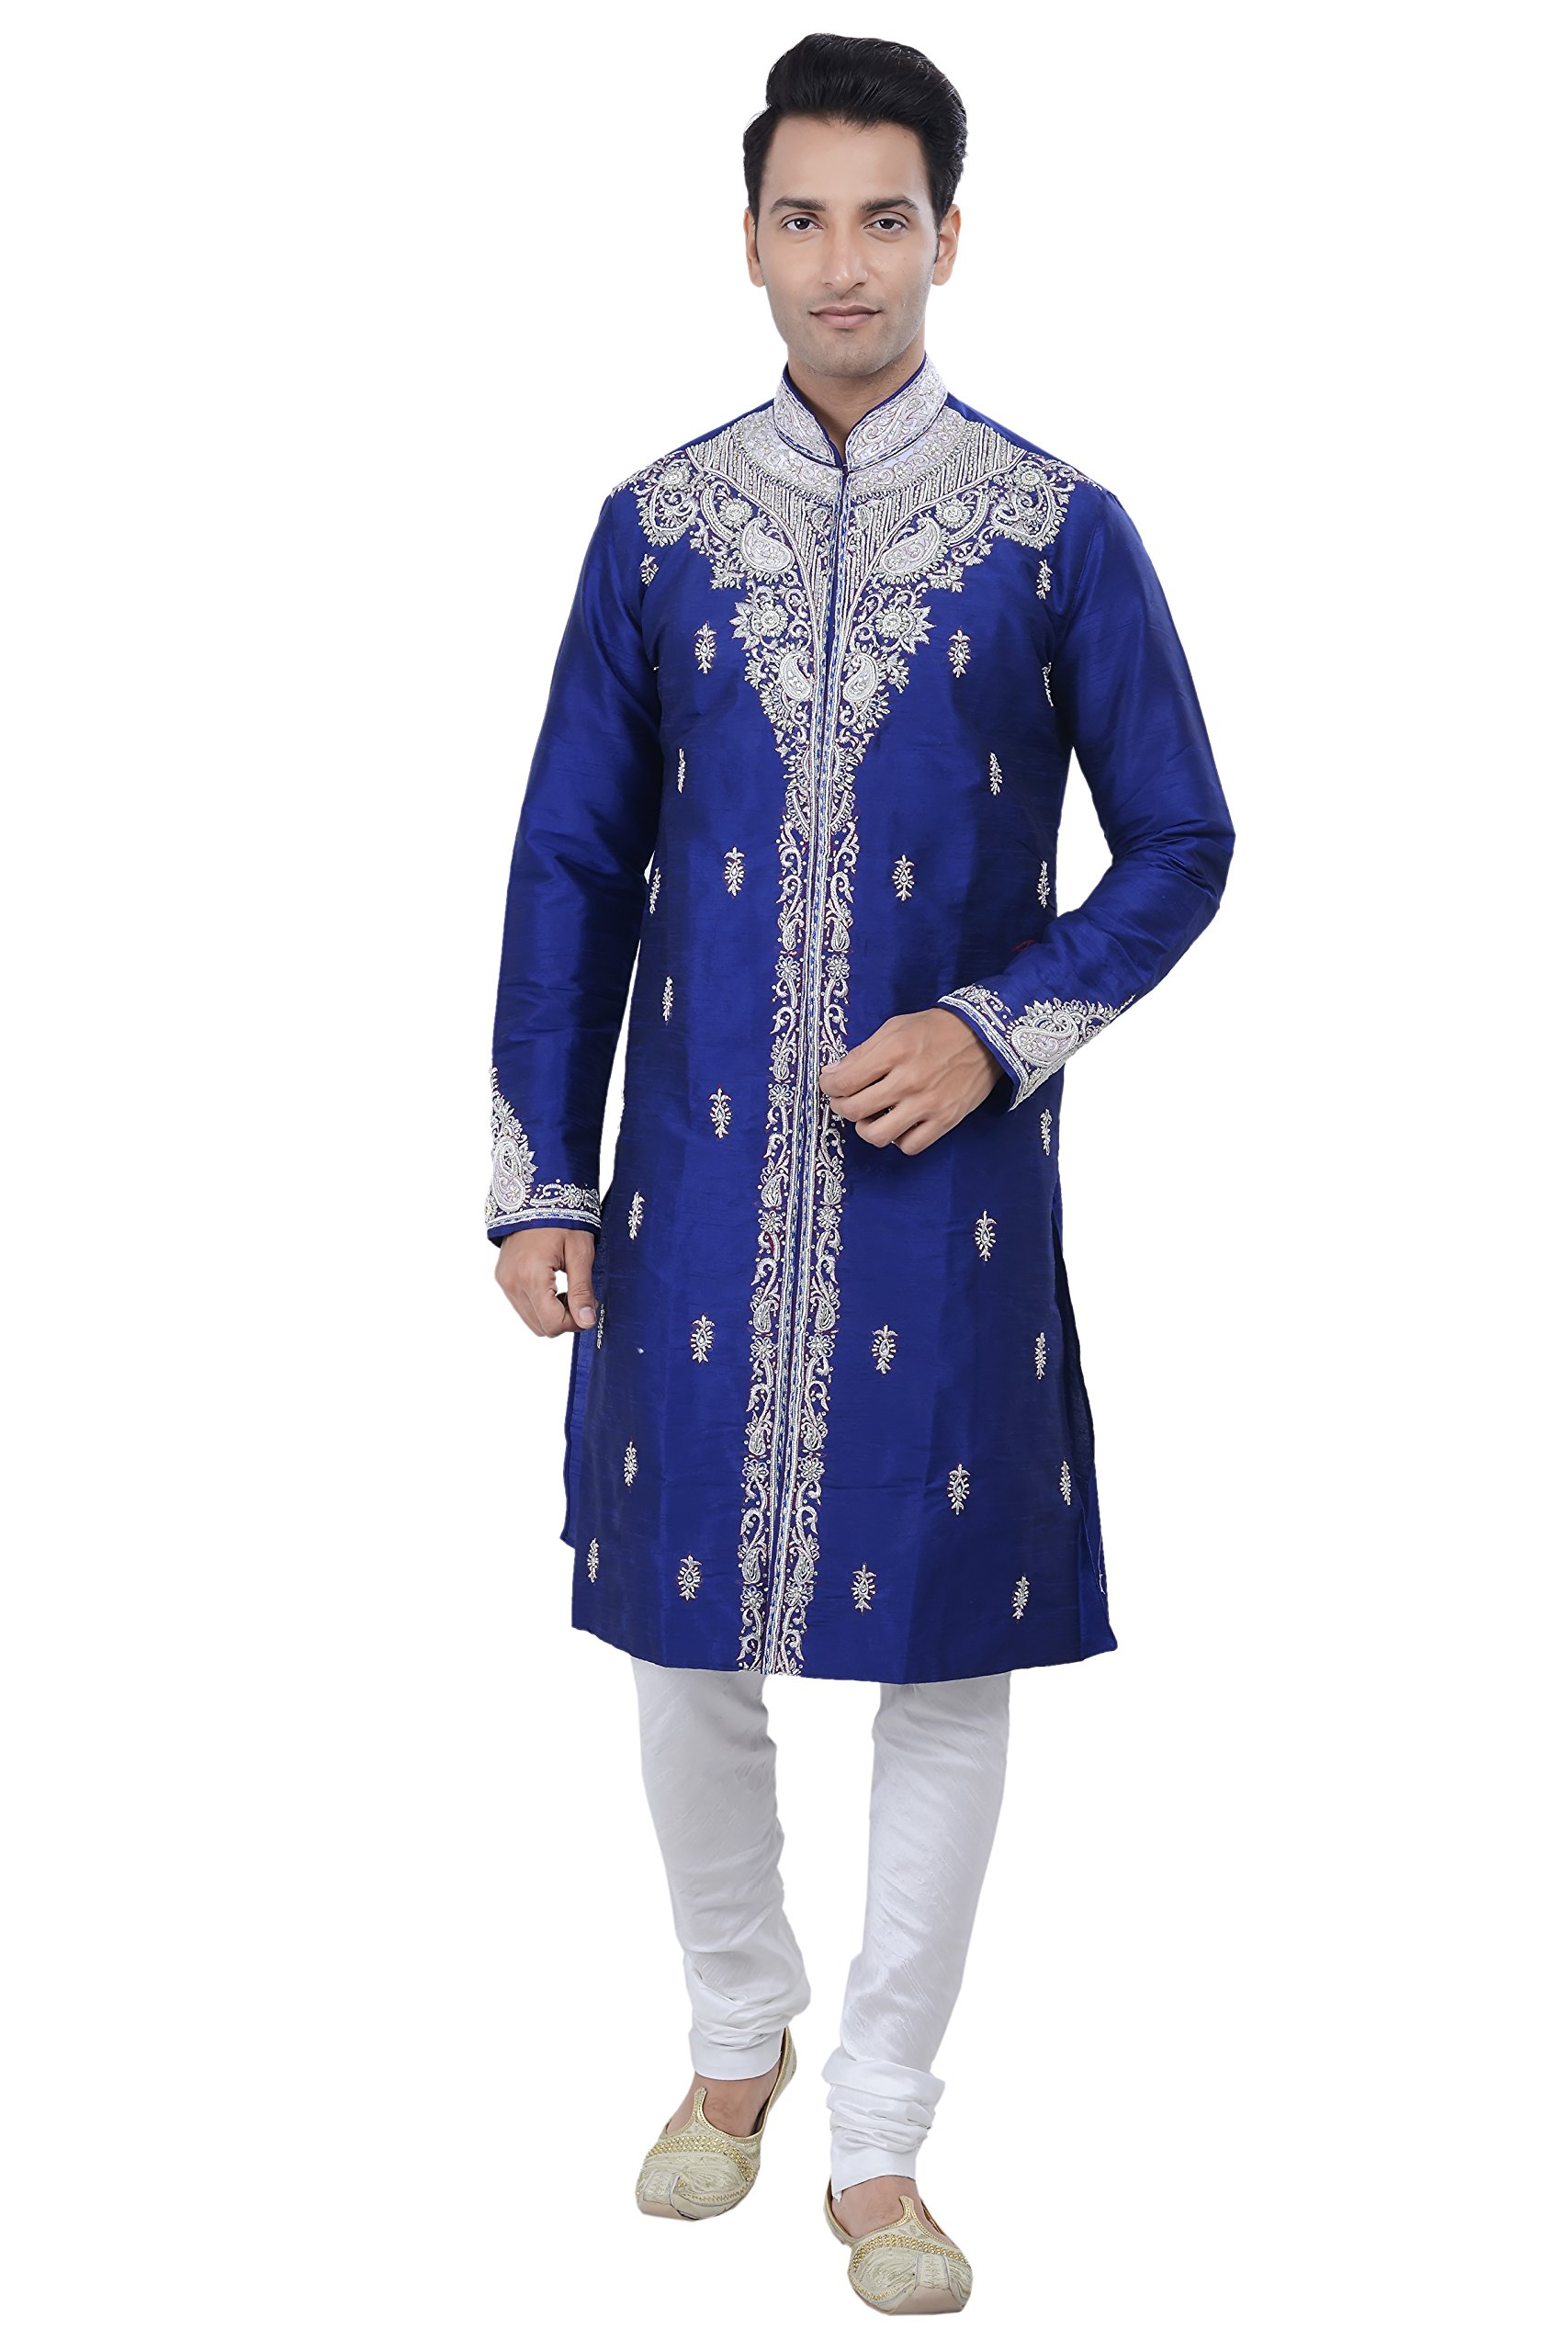 Rajwada Ethnic Indian Design Royal Blue Kurta Sherwani for Men 2pc Suit (XL (42))